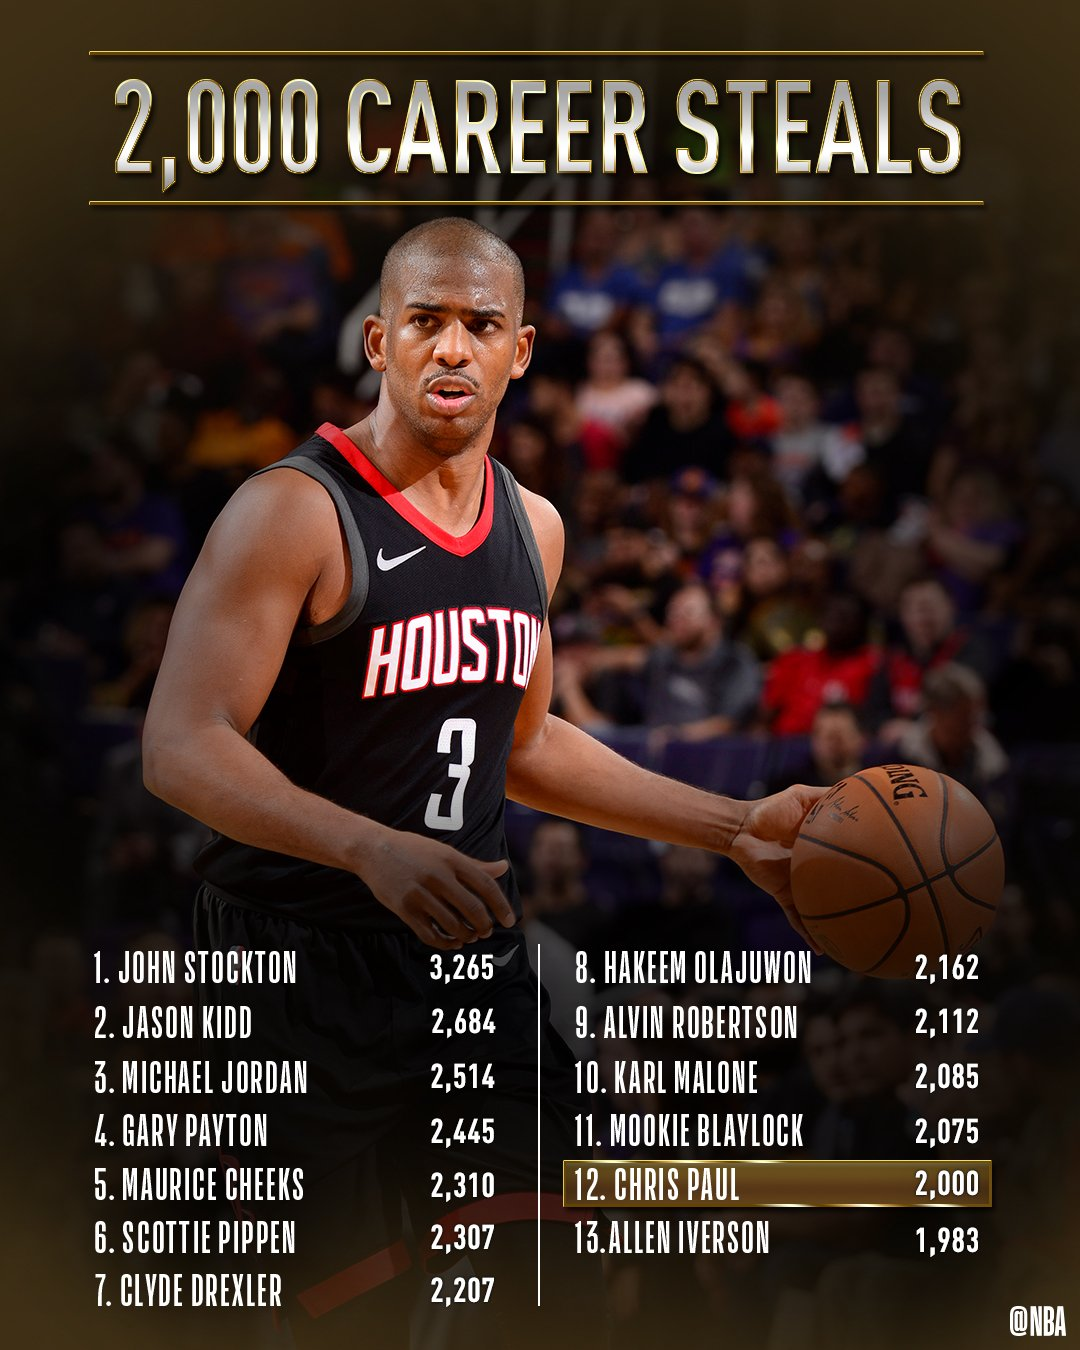 Congrats to @CP3 of the @HoustonRockets for surpassing 2,000 career STEALS!   #Rockets #ThisIsWhyWePlay https://t.co/VWJlYoY1gV